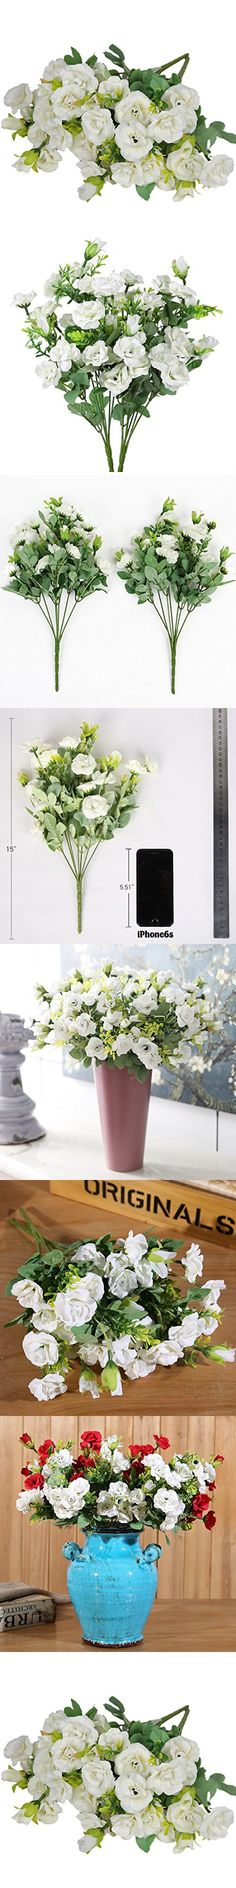 Luyue 7 Branch 21 Heads Artificial Silk Fake Flowers Leaf Rose Wedding Floral Decor Bouquet,Pack of 2 (Happy White)